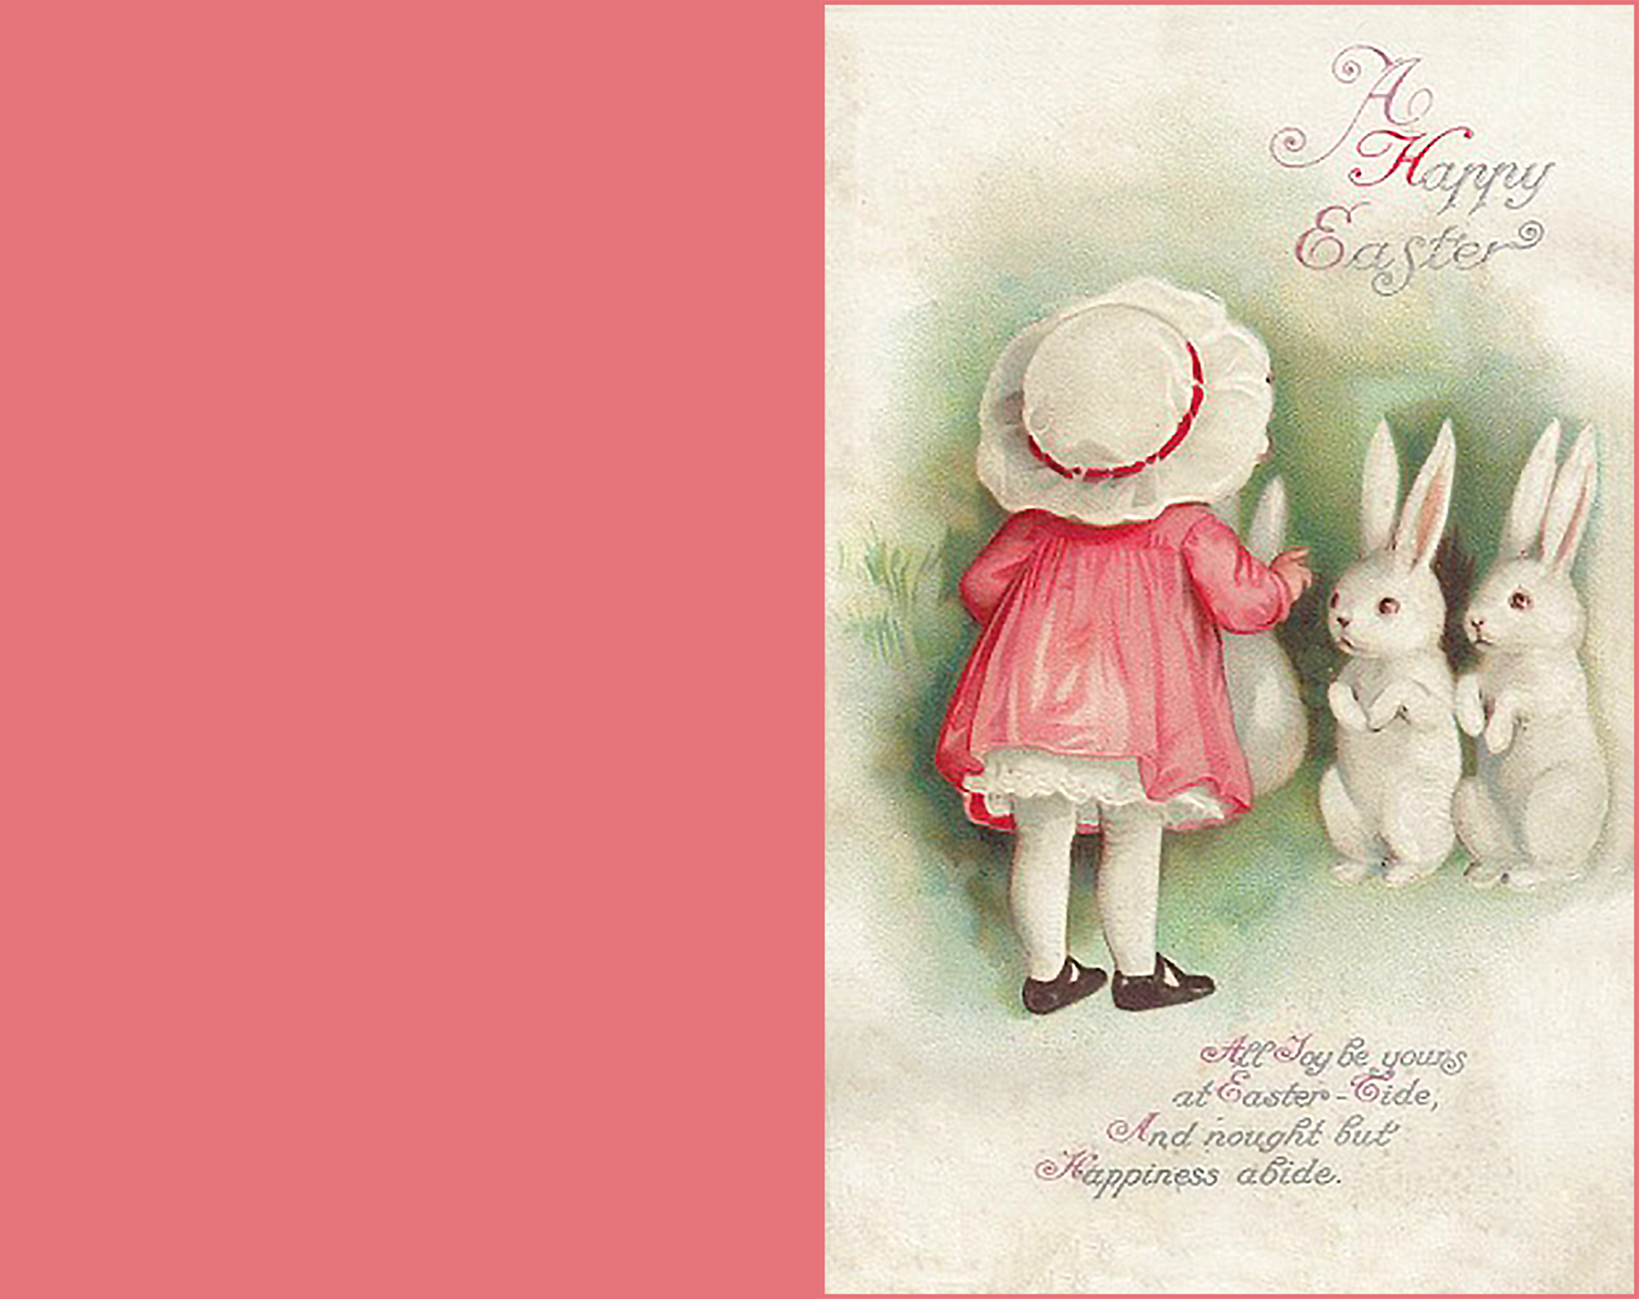 Printable Easter greeting card in vintage style.